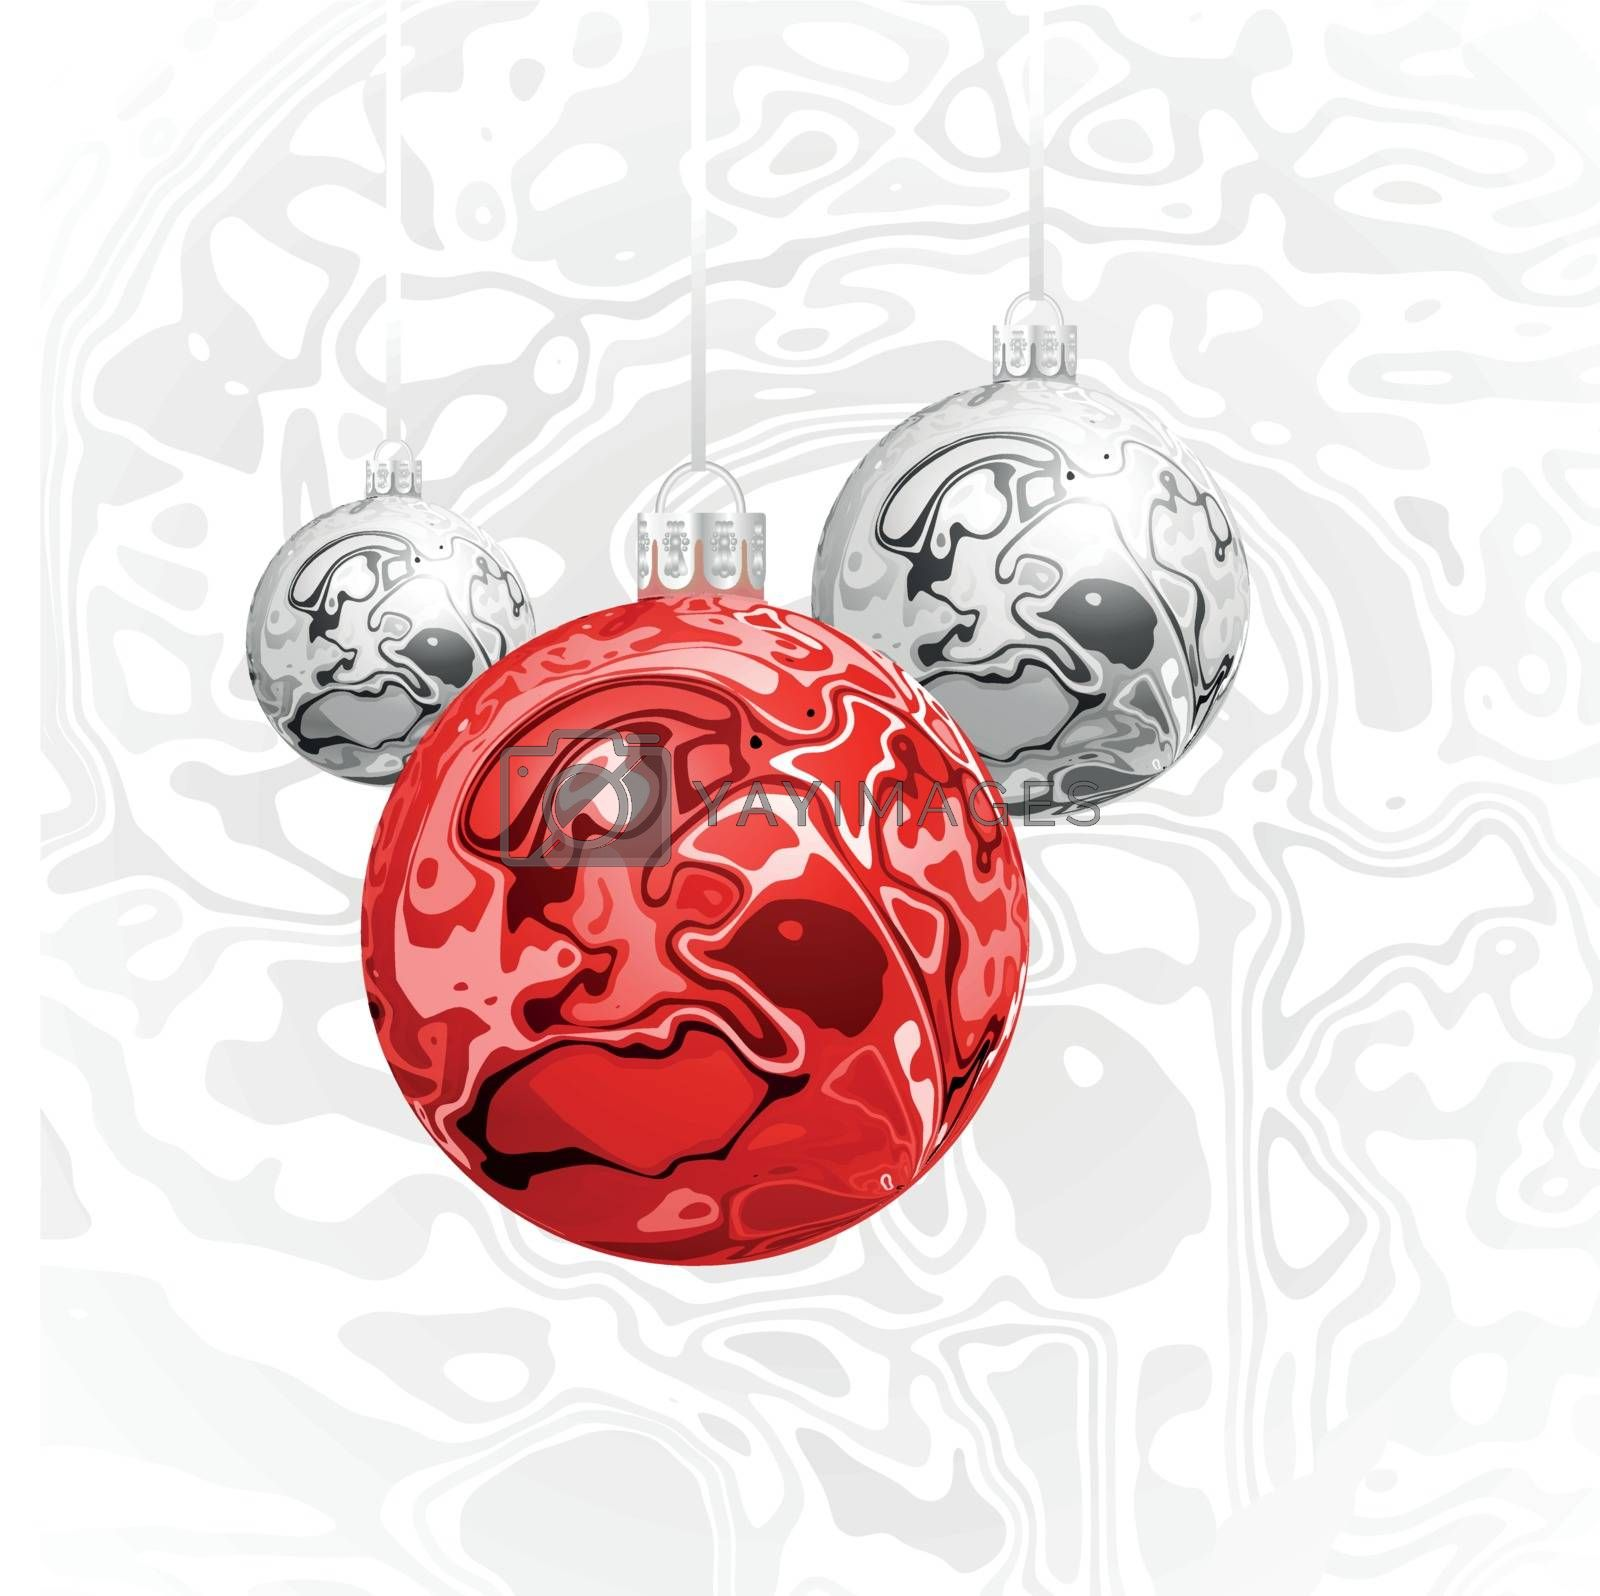 Royalty free image of Christmas vector balls in the style of Marble Ink by sermax55